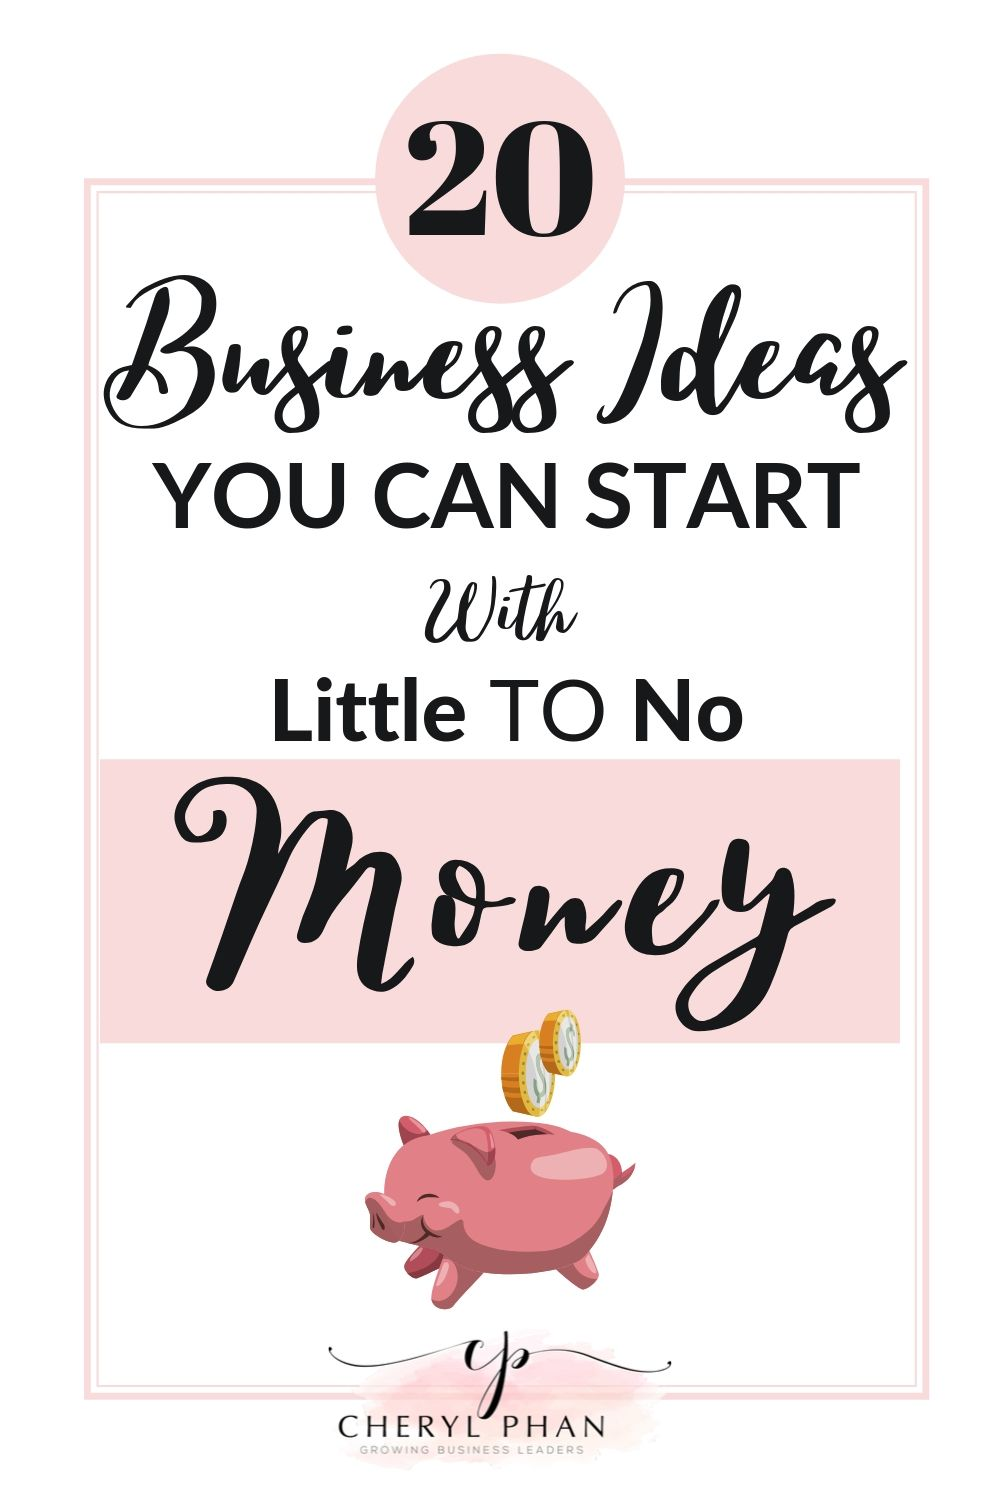 Businesses you can start with little to no money